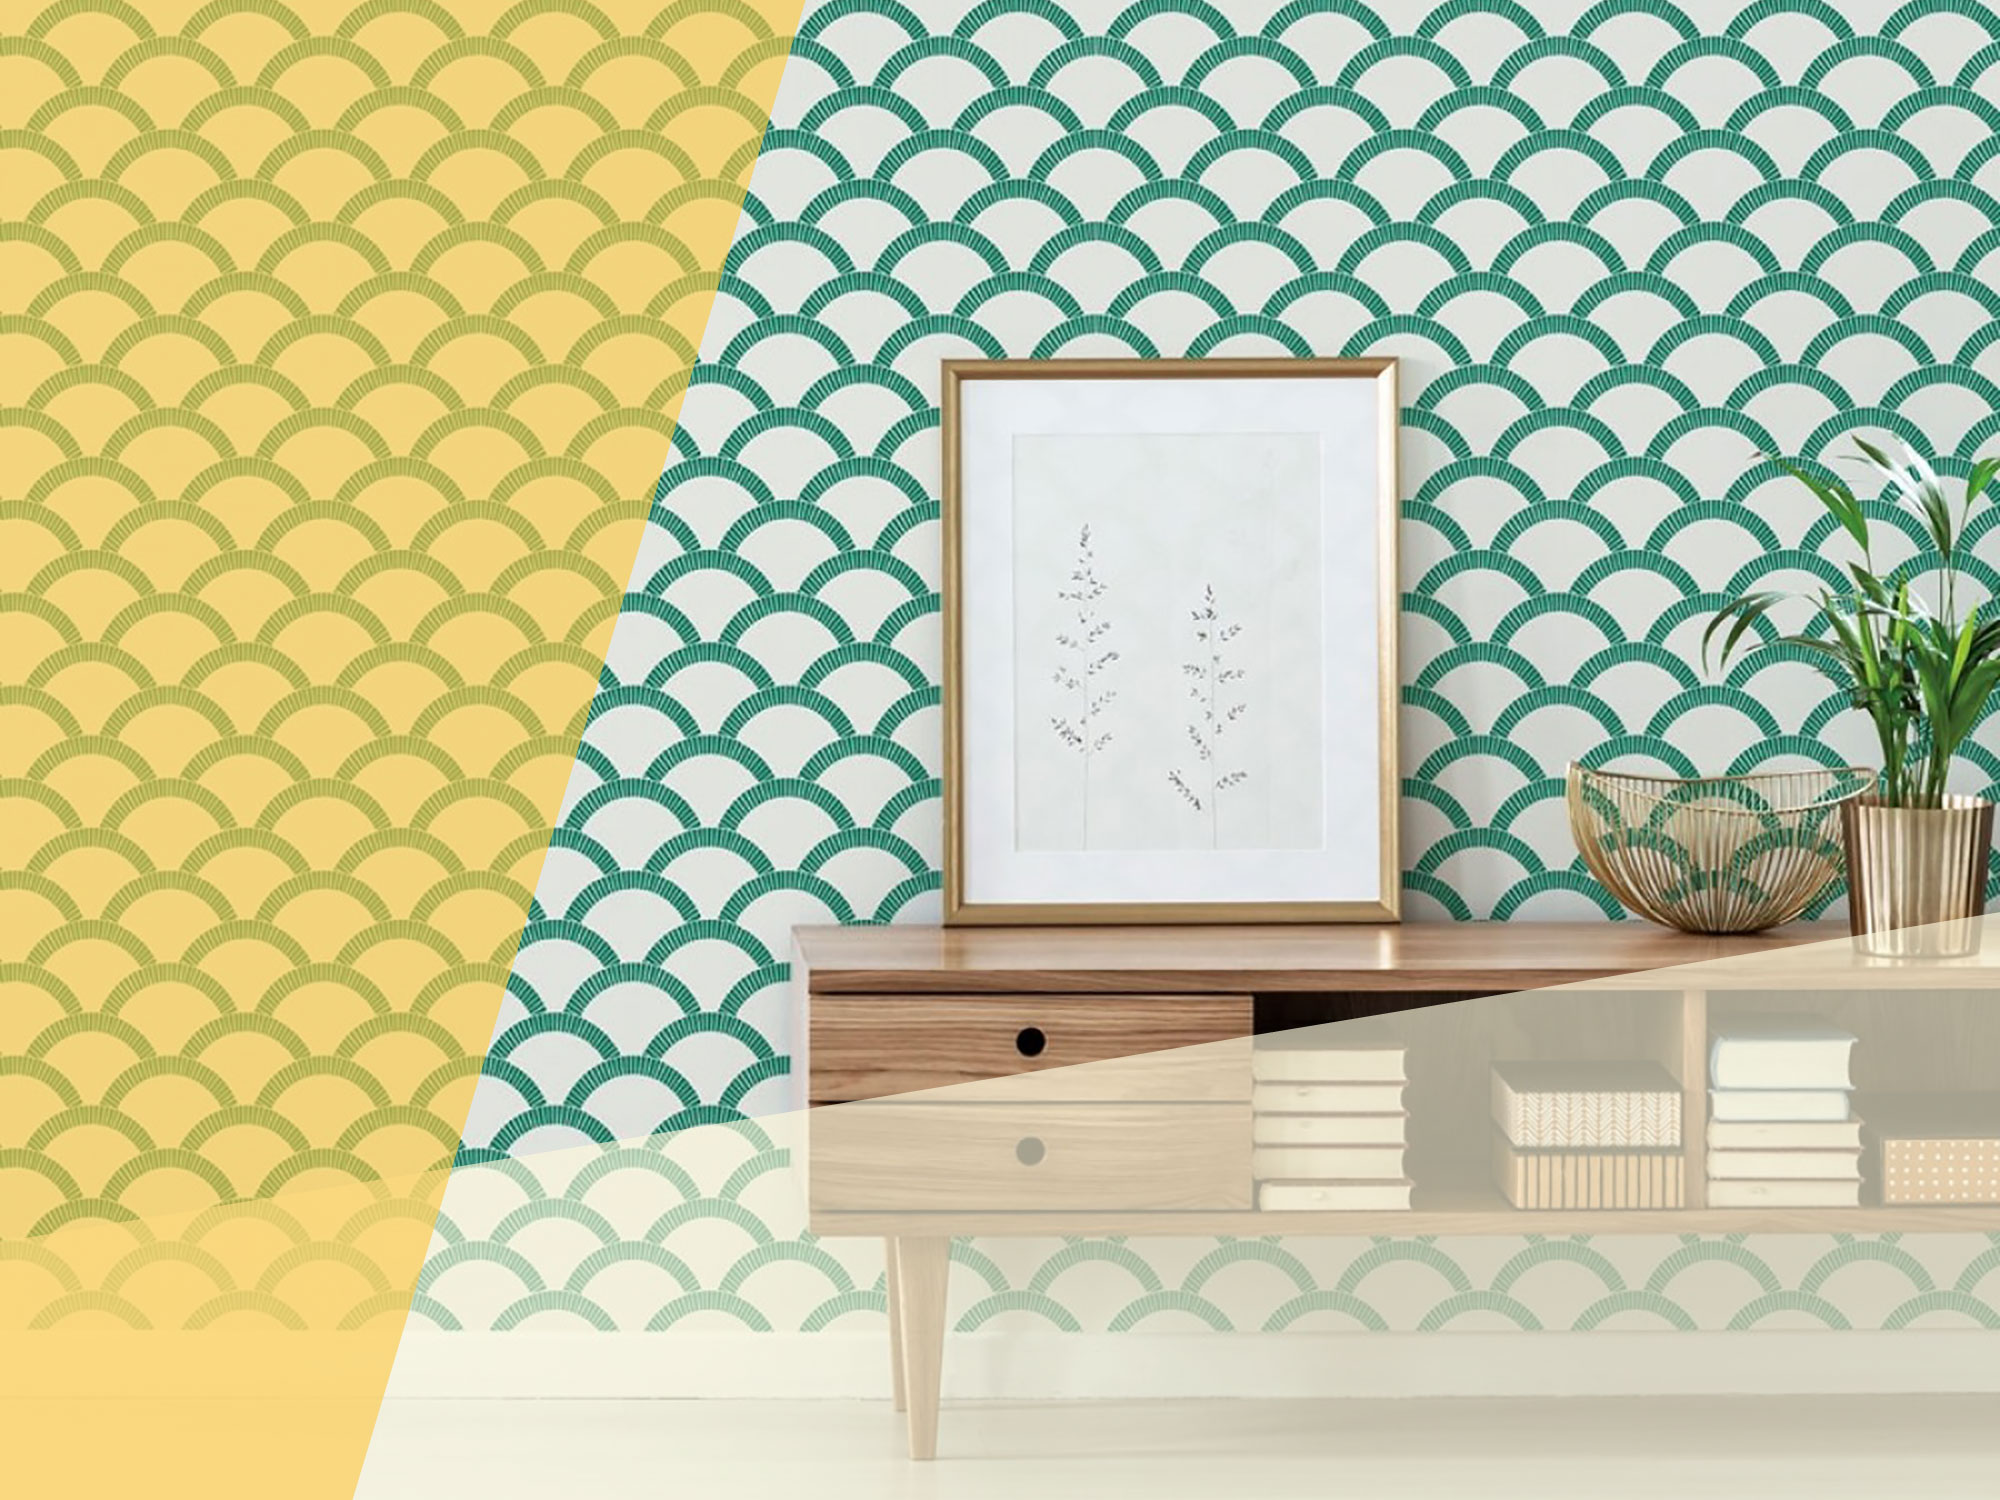 24 Wallpaper Designs Guaranteed to Transform Your Space